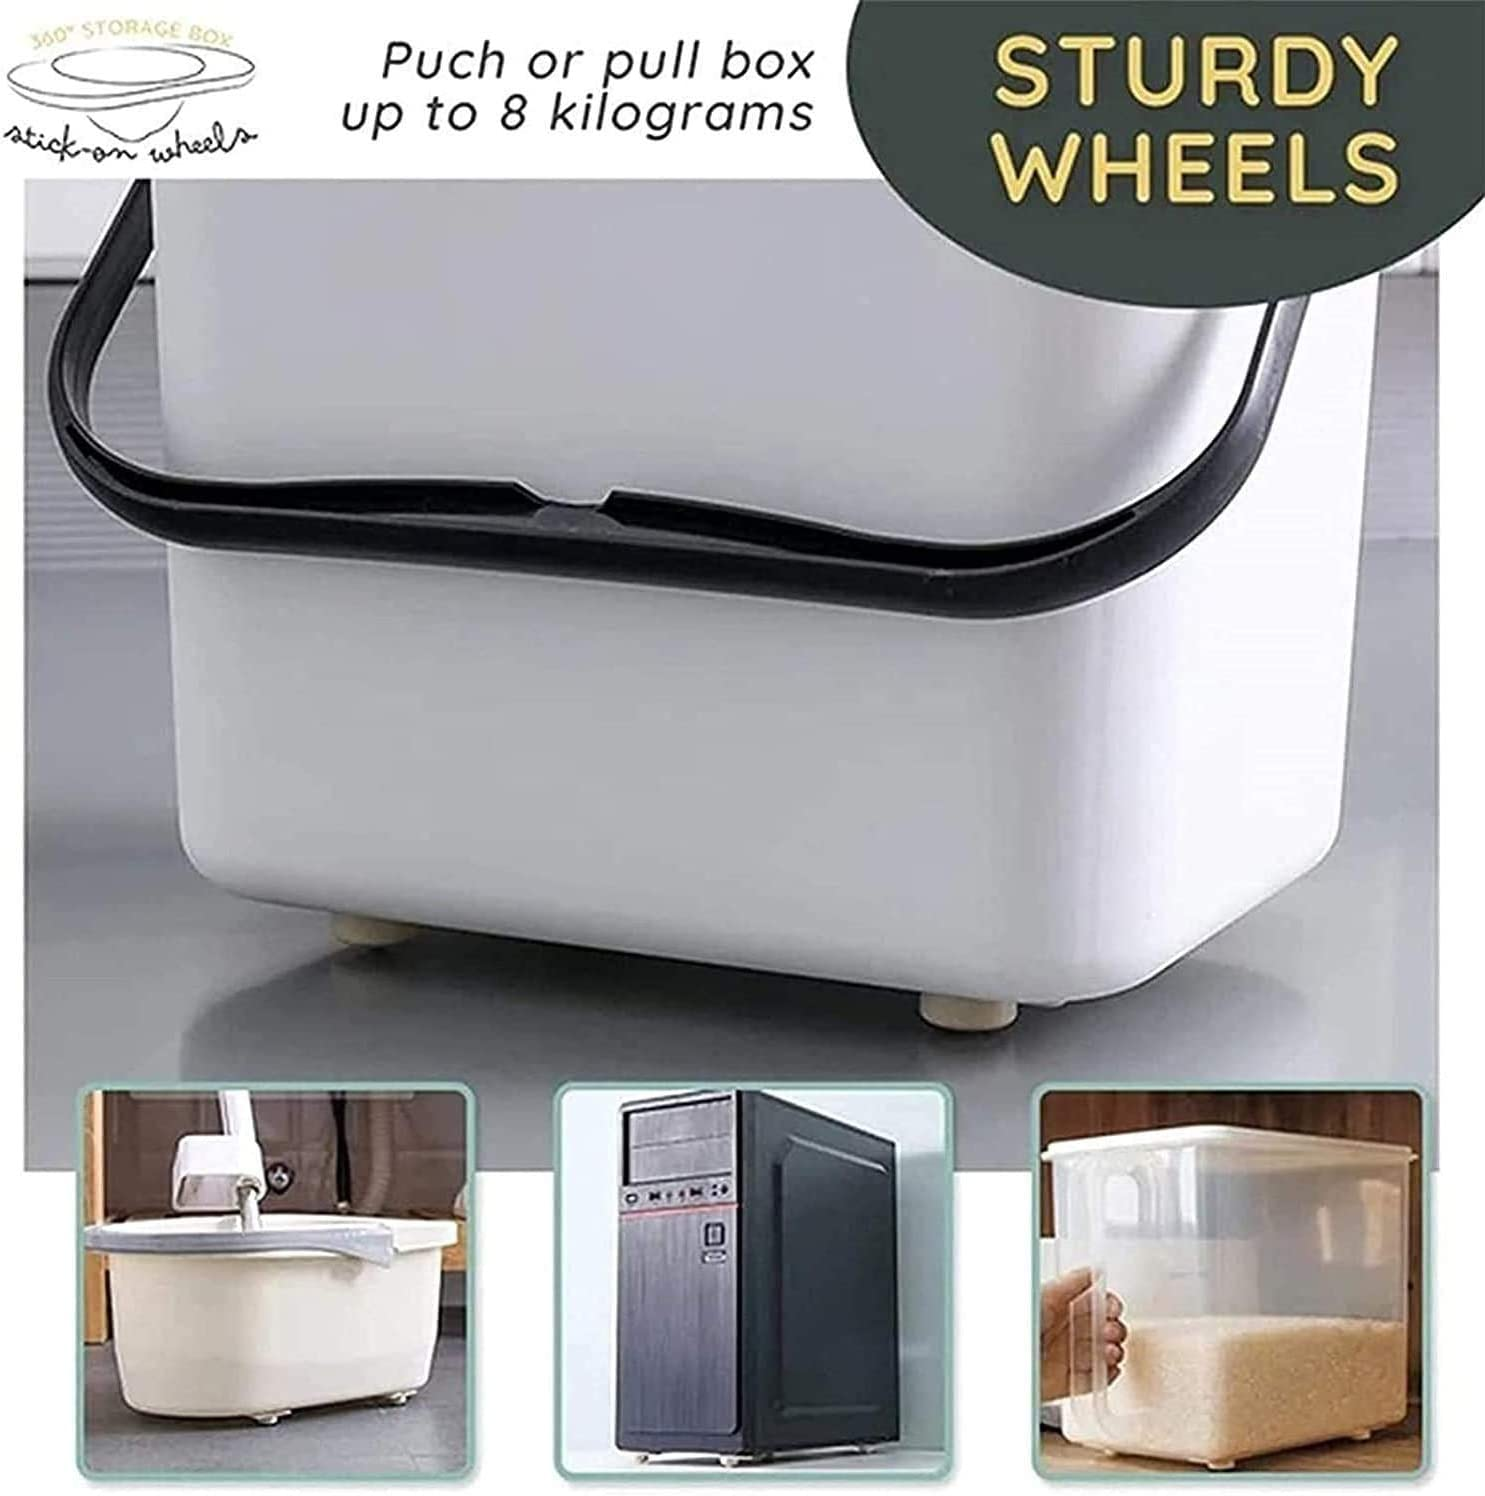 Paste Type Universal Pulley with Self-Adhesive Sticker 8PCS,Plastic 360 Degree Rotation Universal Pulleys Storage Box Trash Can Furniture Bottom Wheel Rollers